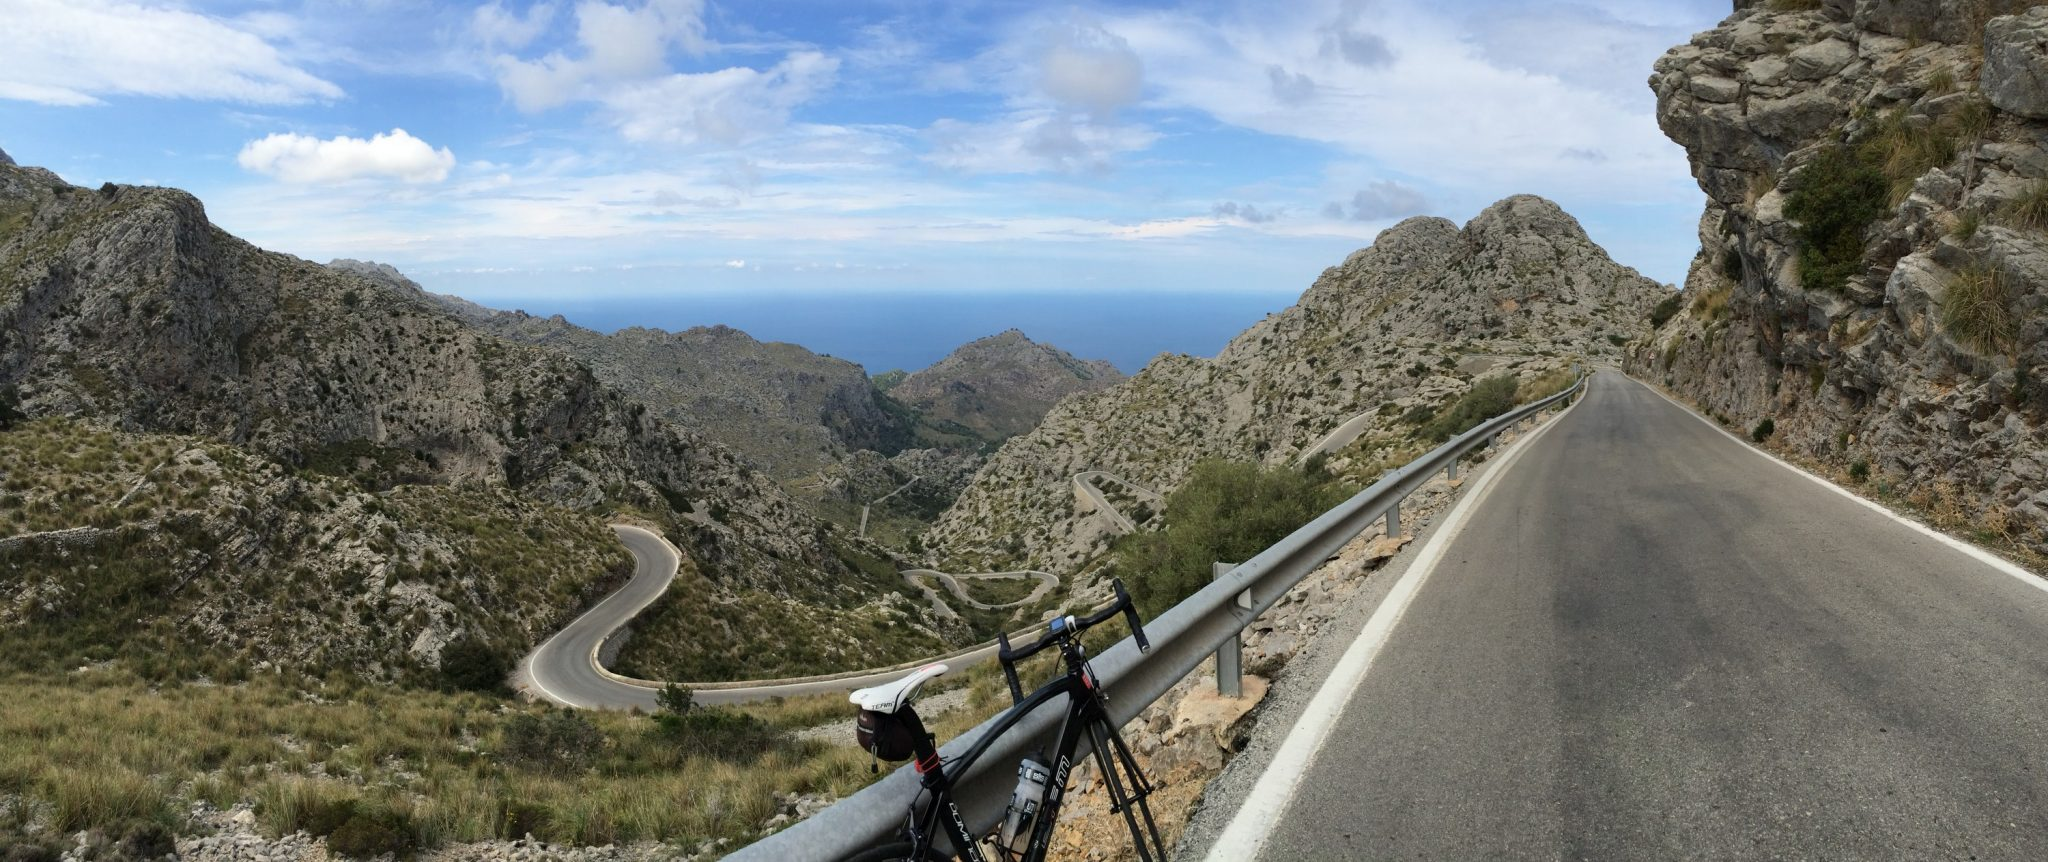 Sa Calobra - view from just before the summit